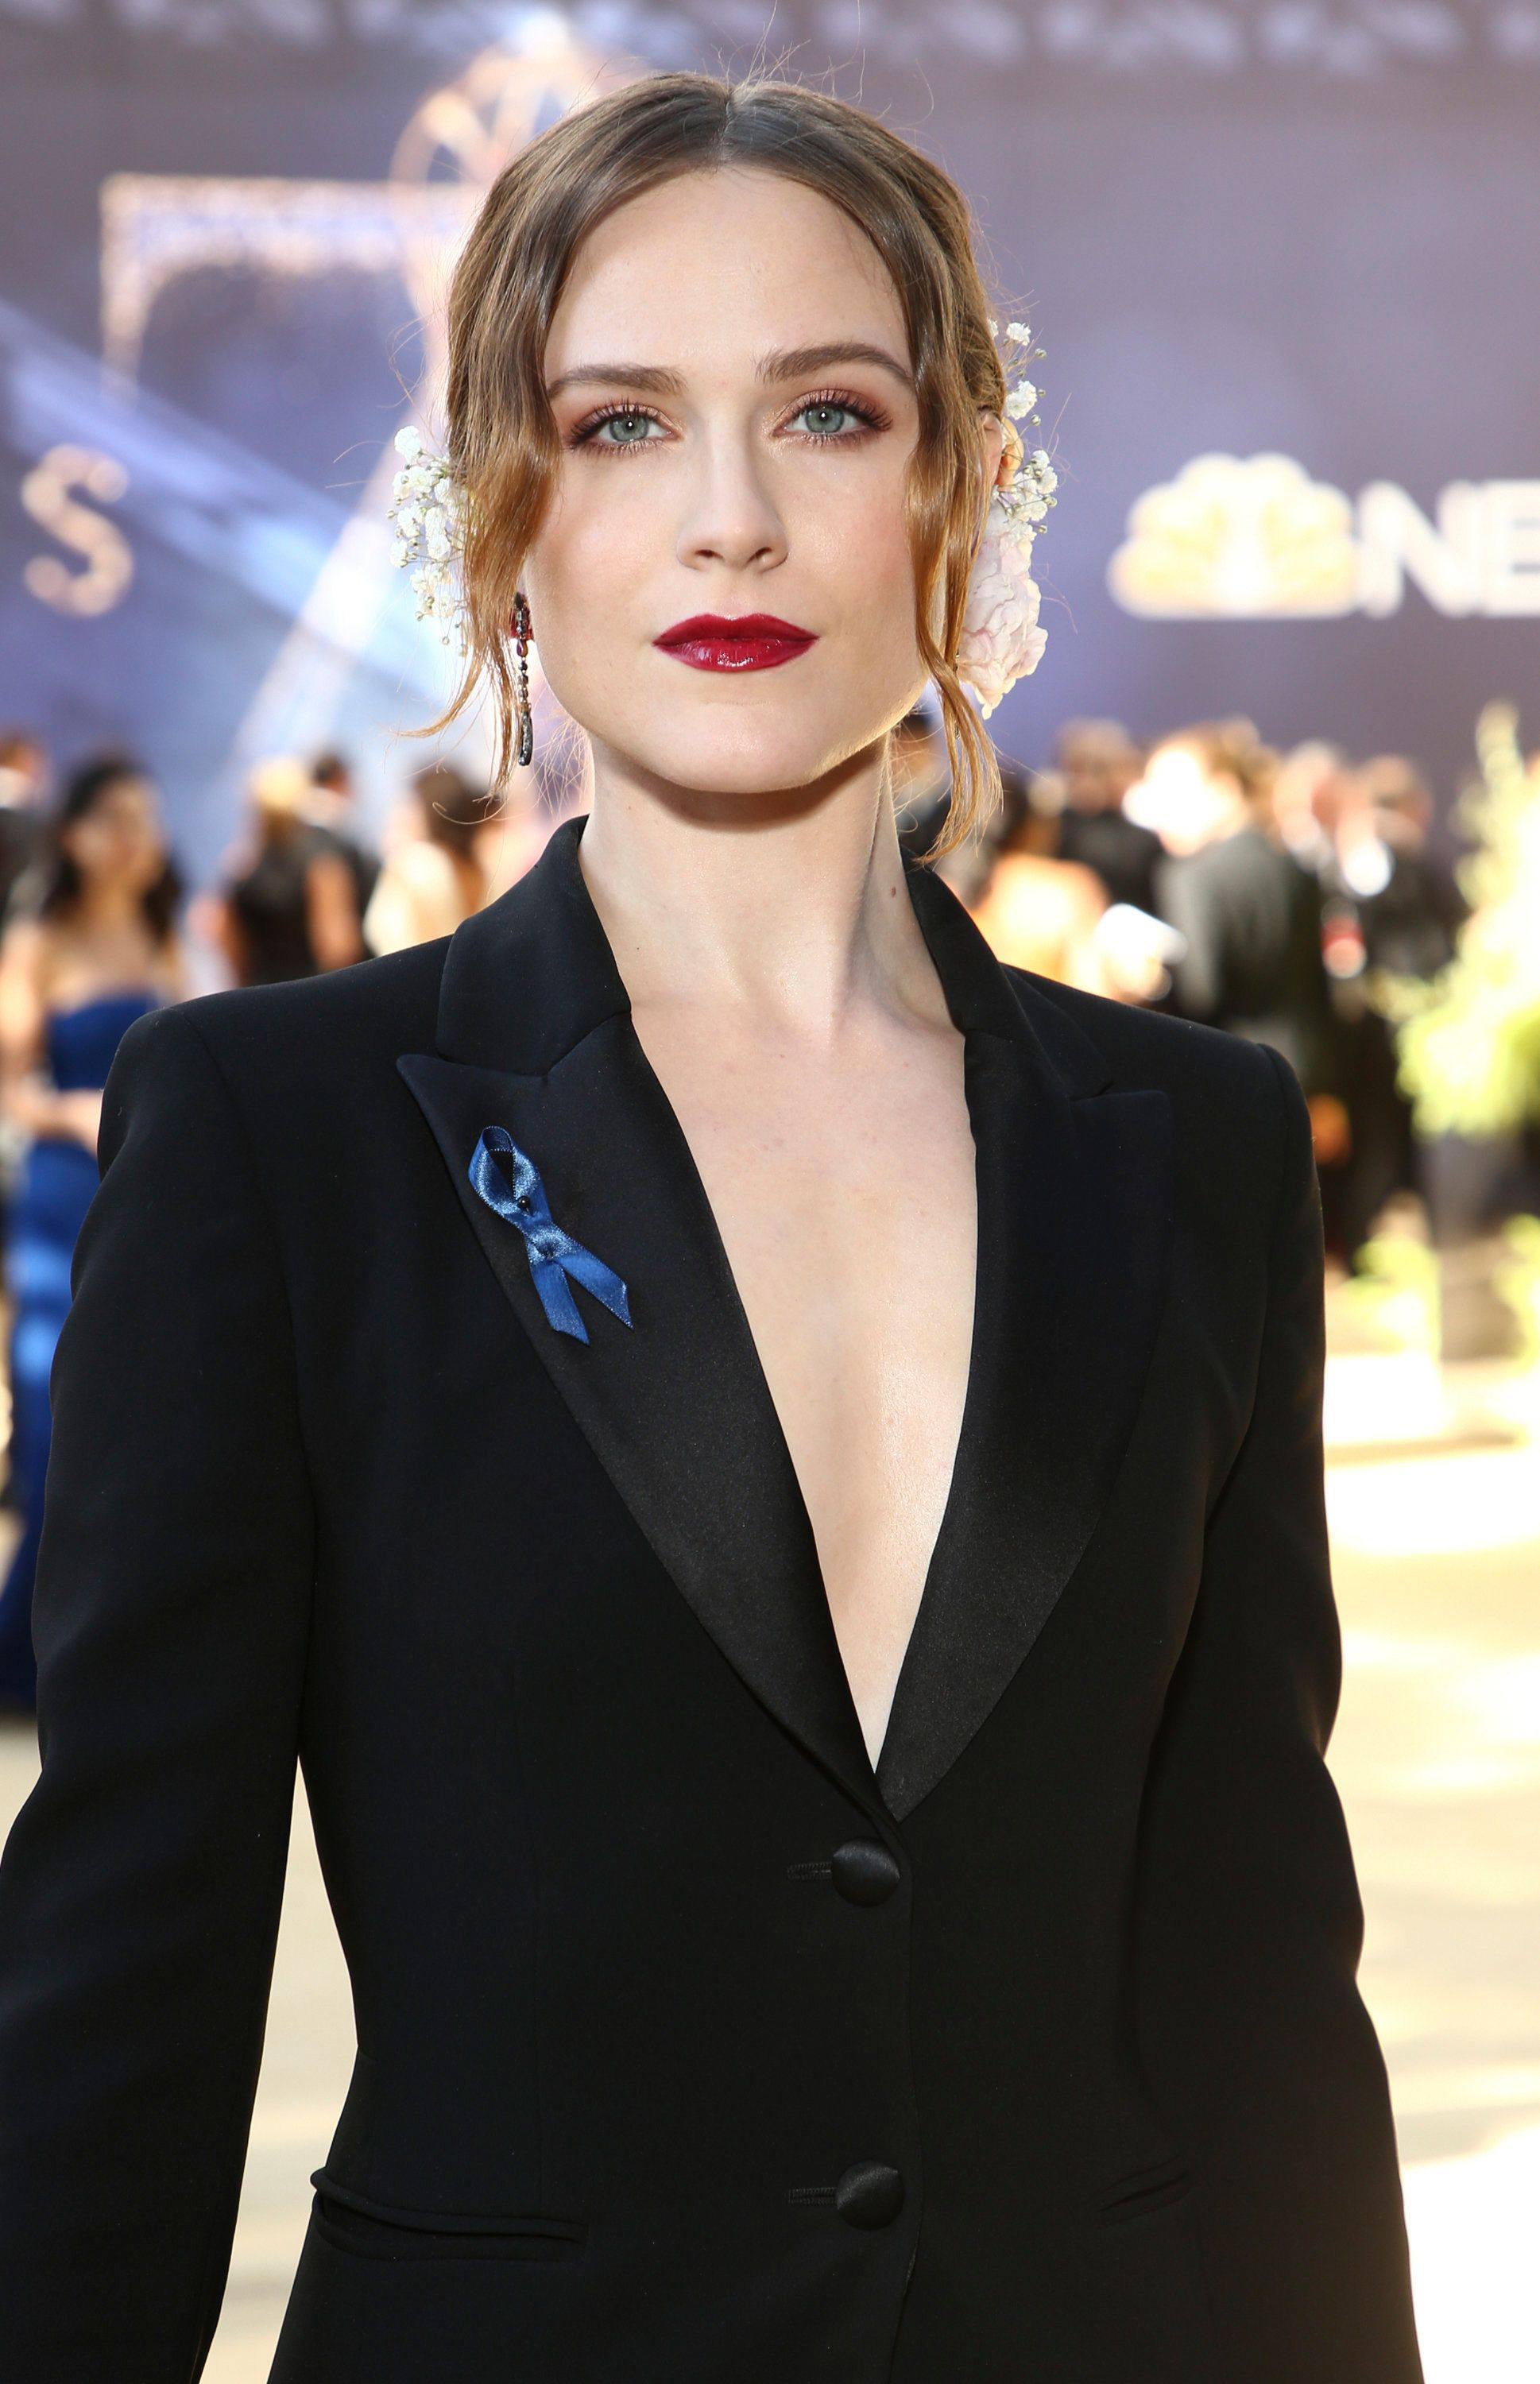 Evan Rachel Wood Shares Heartbreaking Stories About Abuse,